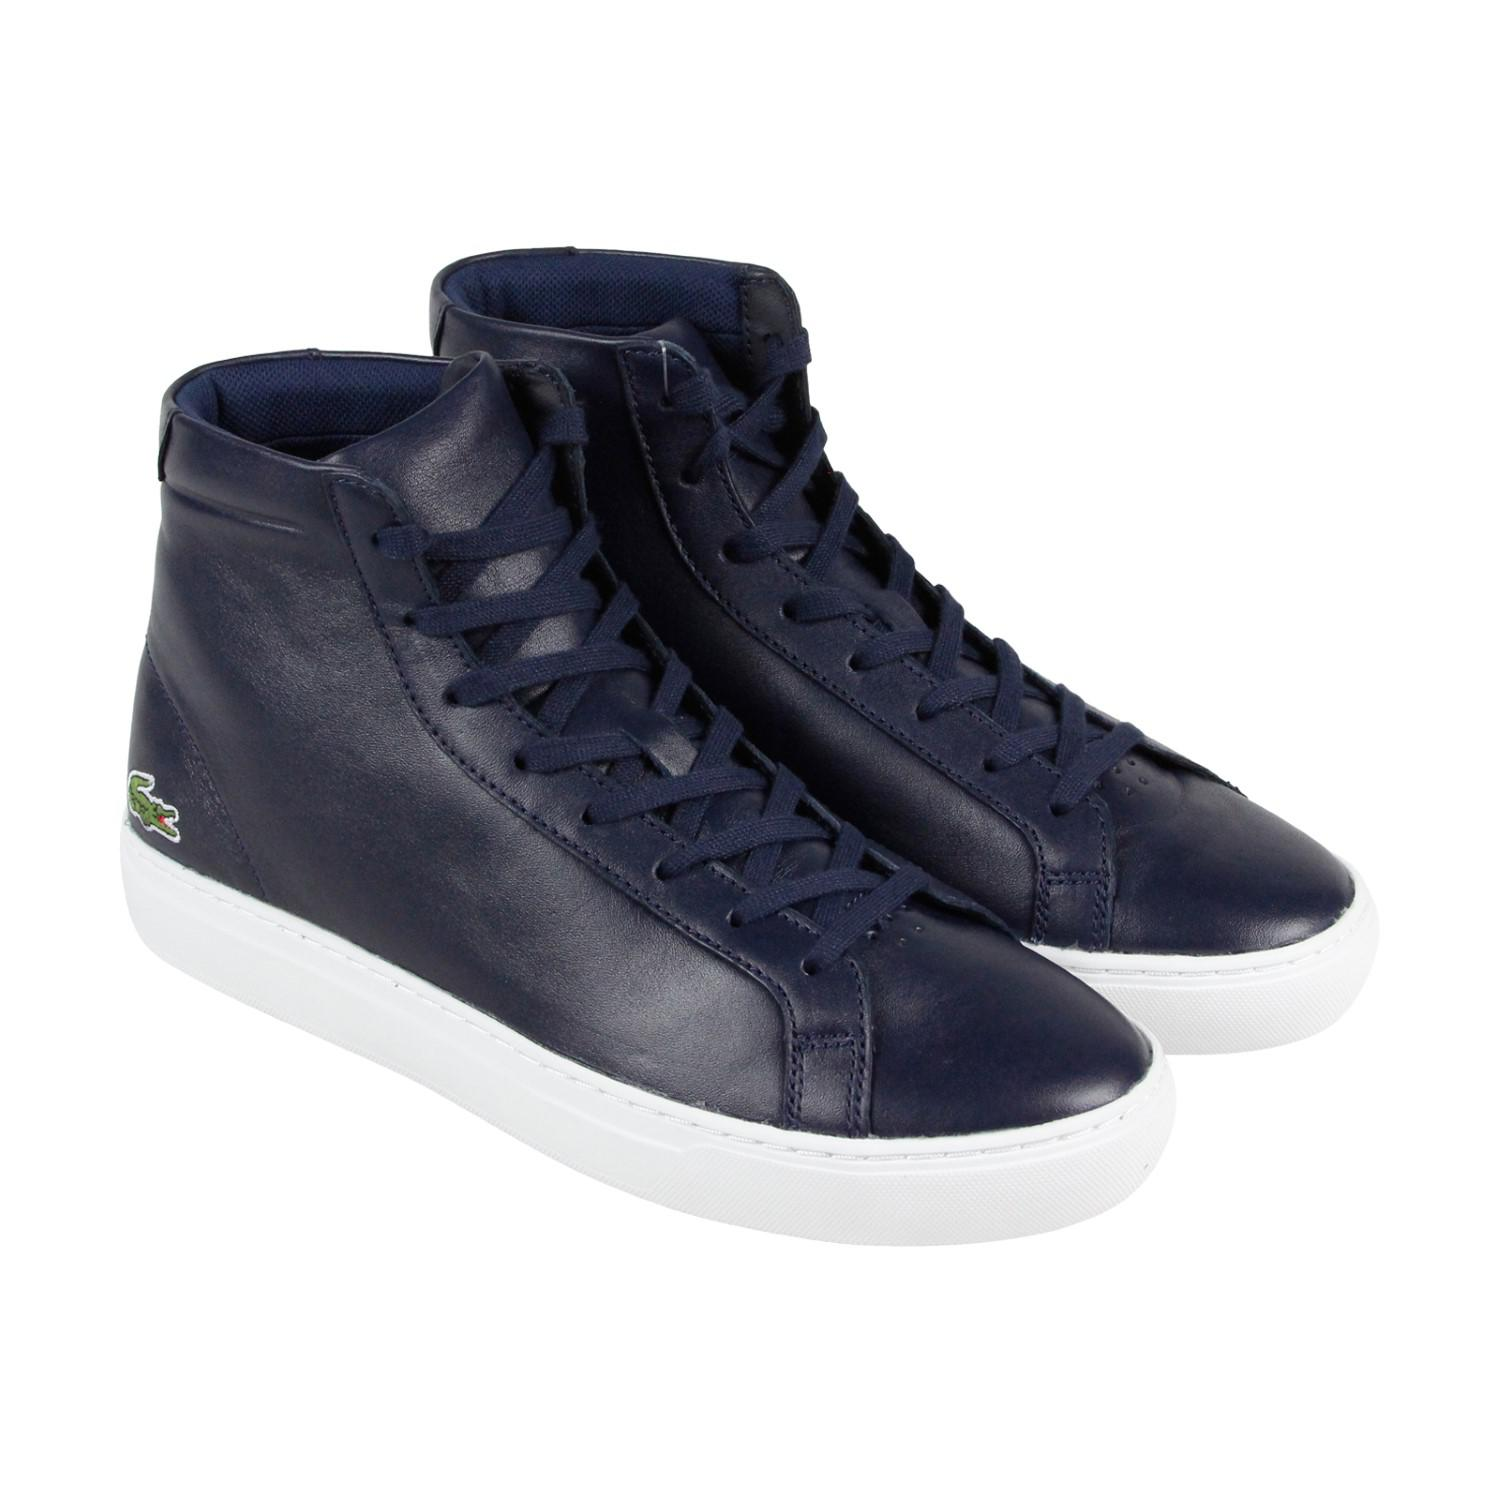 68158f9bd581 Lyst - Lacoste L.12.12 Mid 316 1 Cam Blue Mens High Top Sneakers in ...